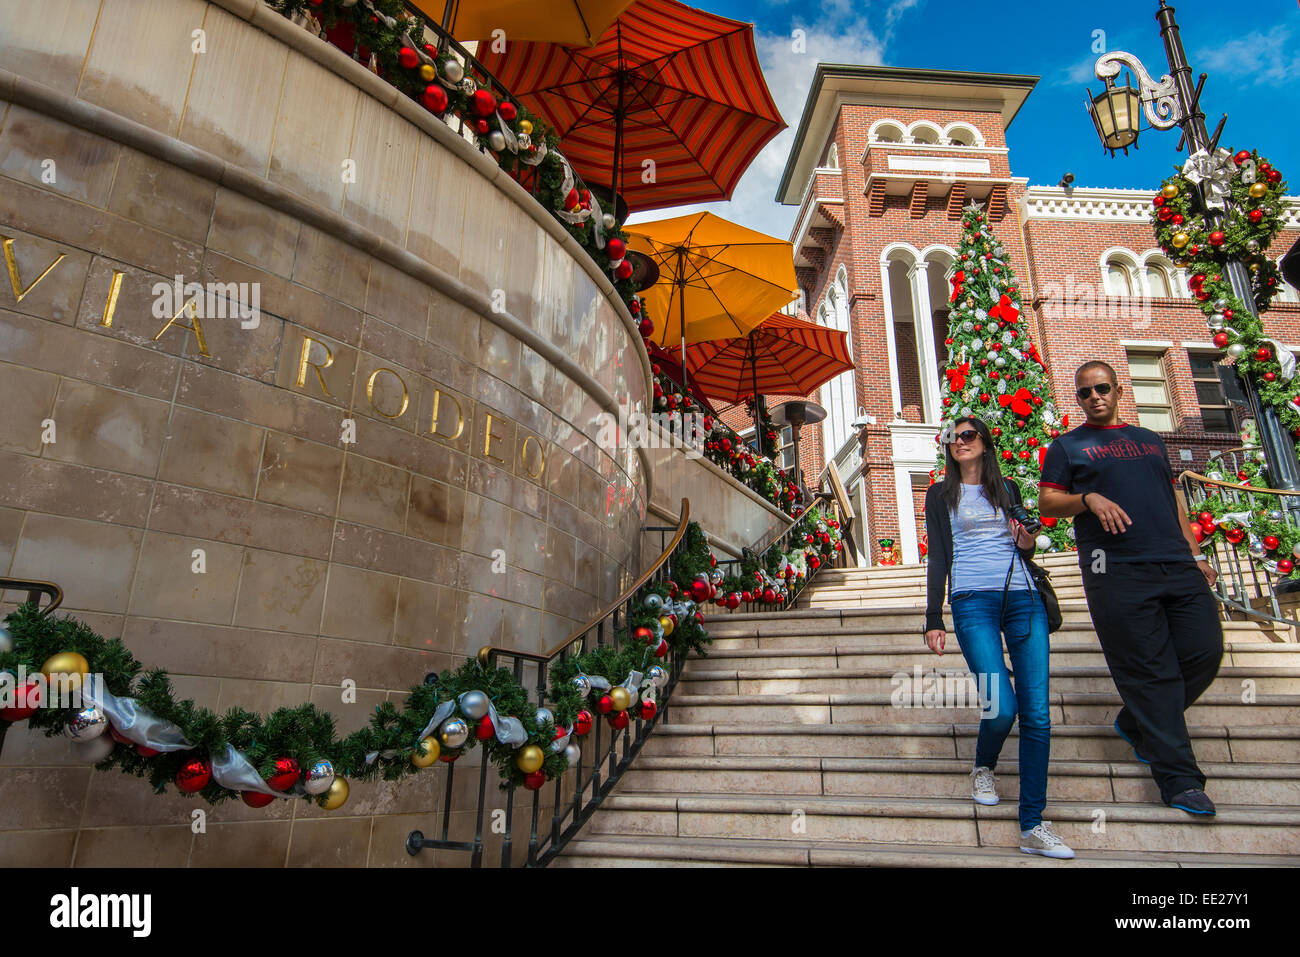 Via Rodeo staircase with Christmas decorations, Beverly Hills, Los Angeles, California, USA - Stock Image